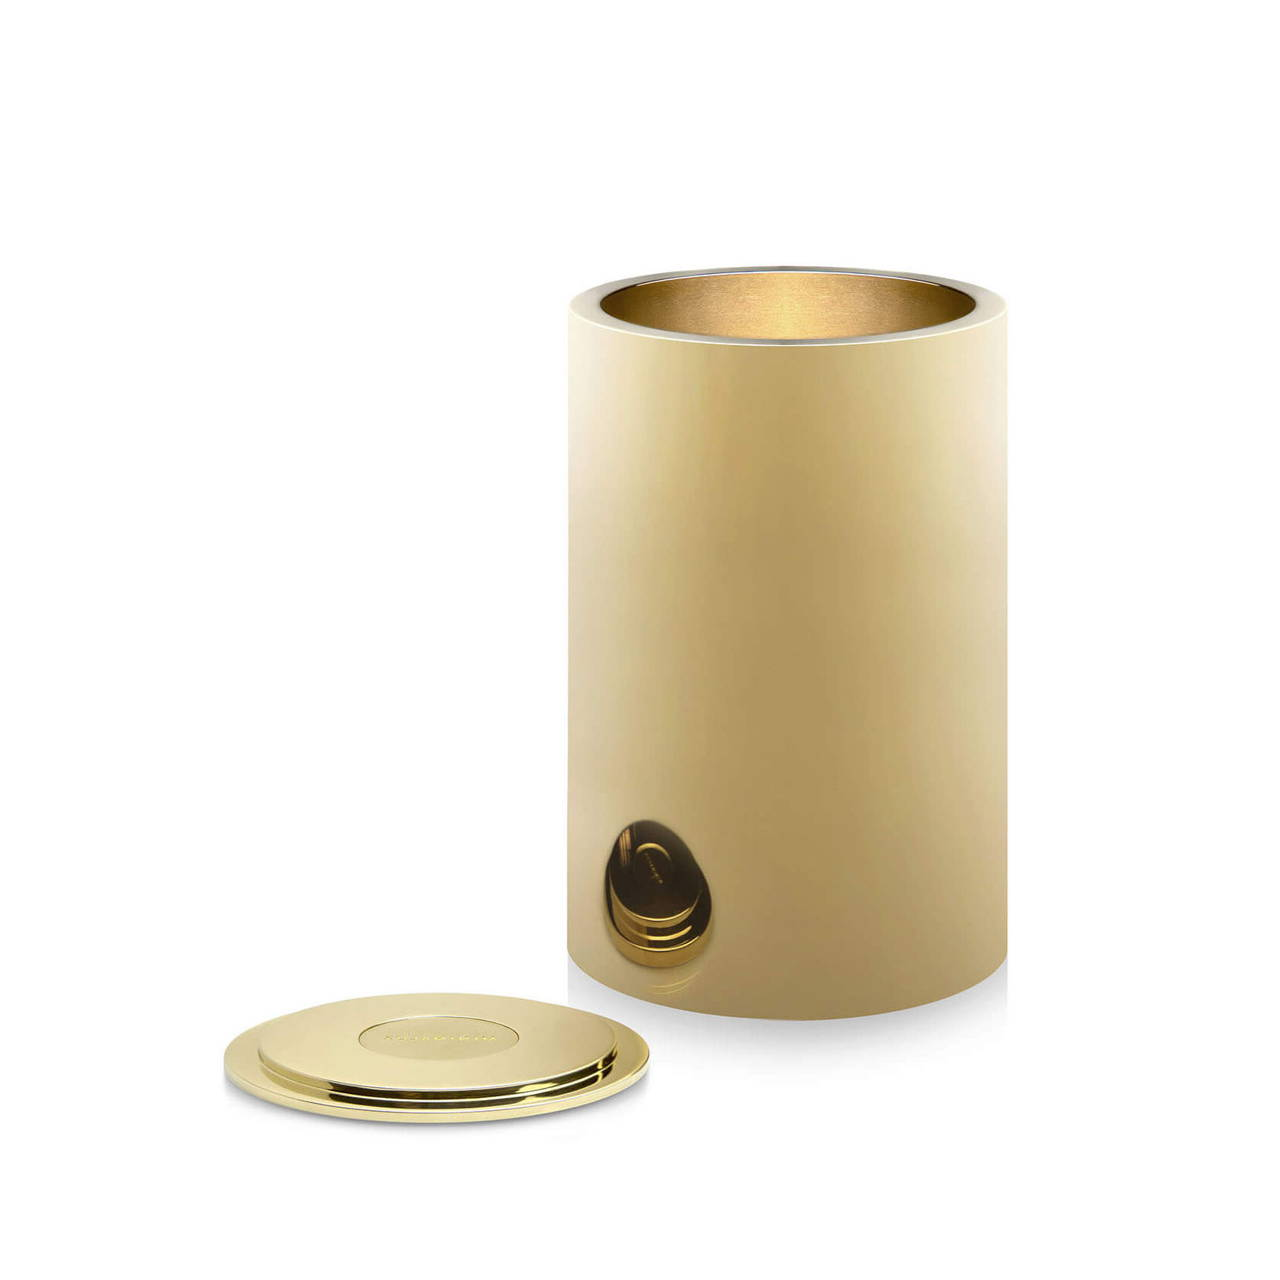 Polished Brass Pot 90 with Lid off